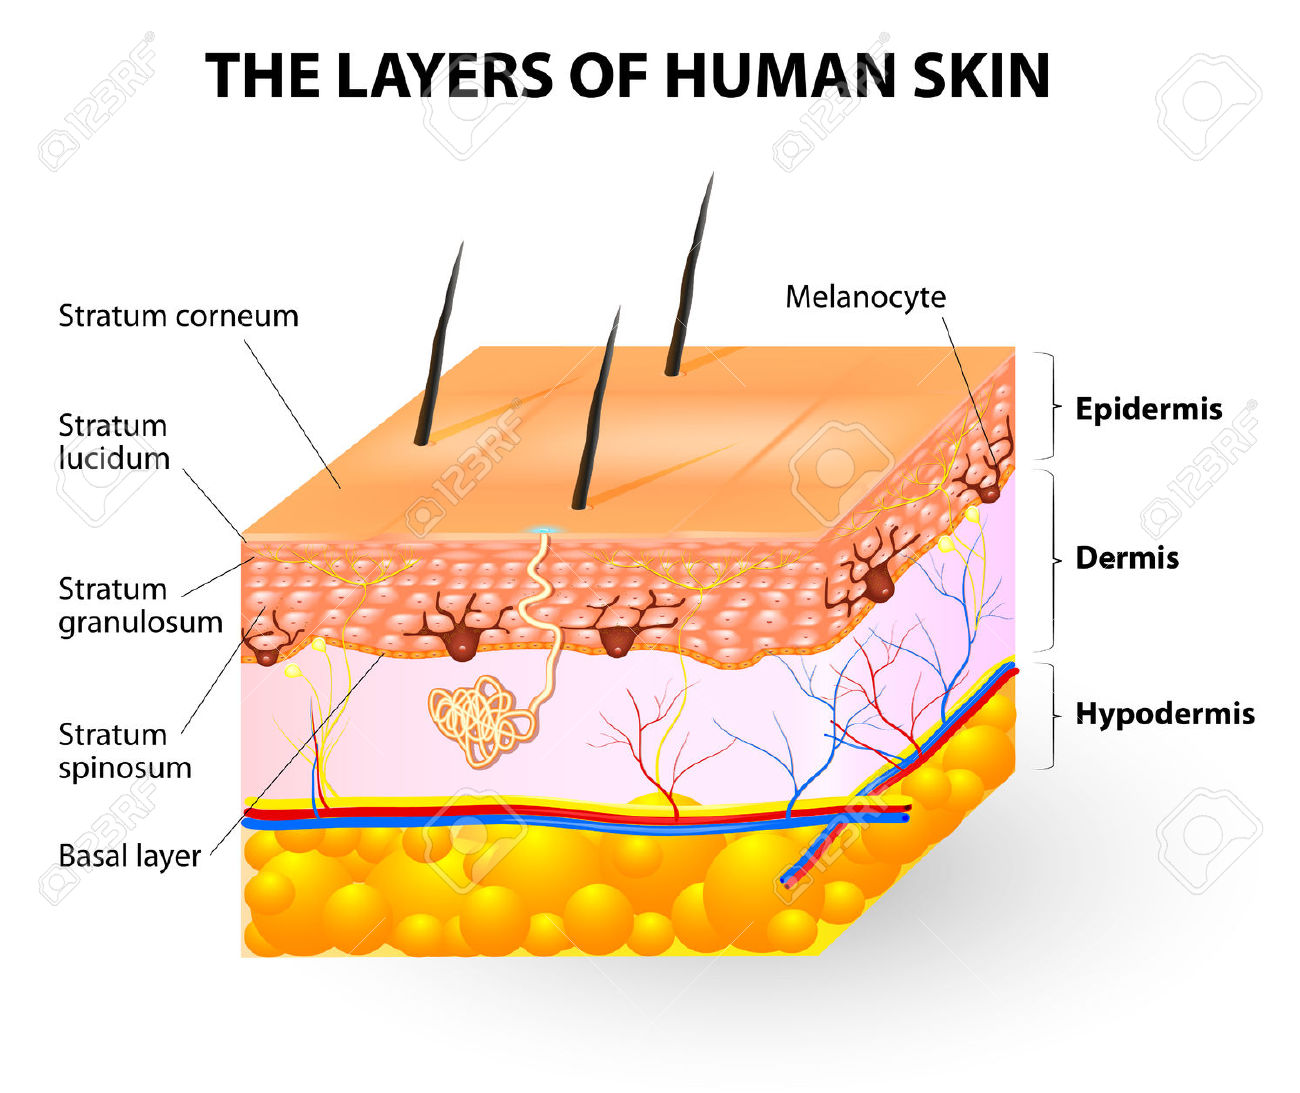 7 layers of skin diagram wiring leviton decora light dimmer switch epidermis clipart clipground